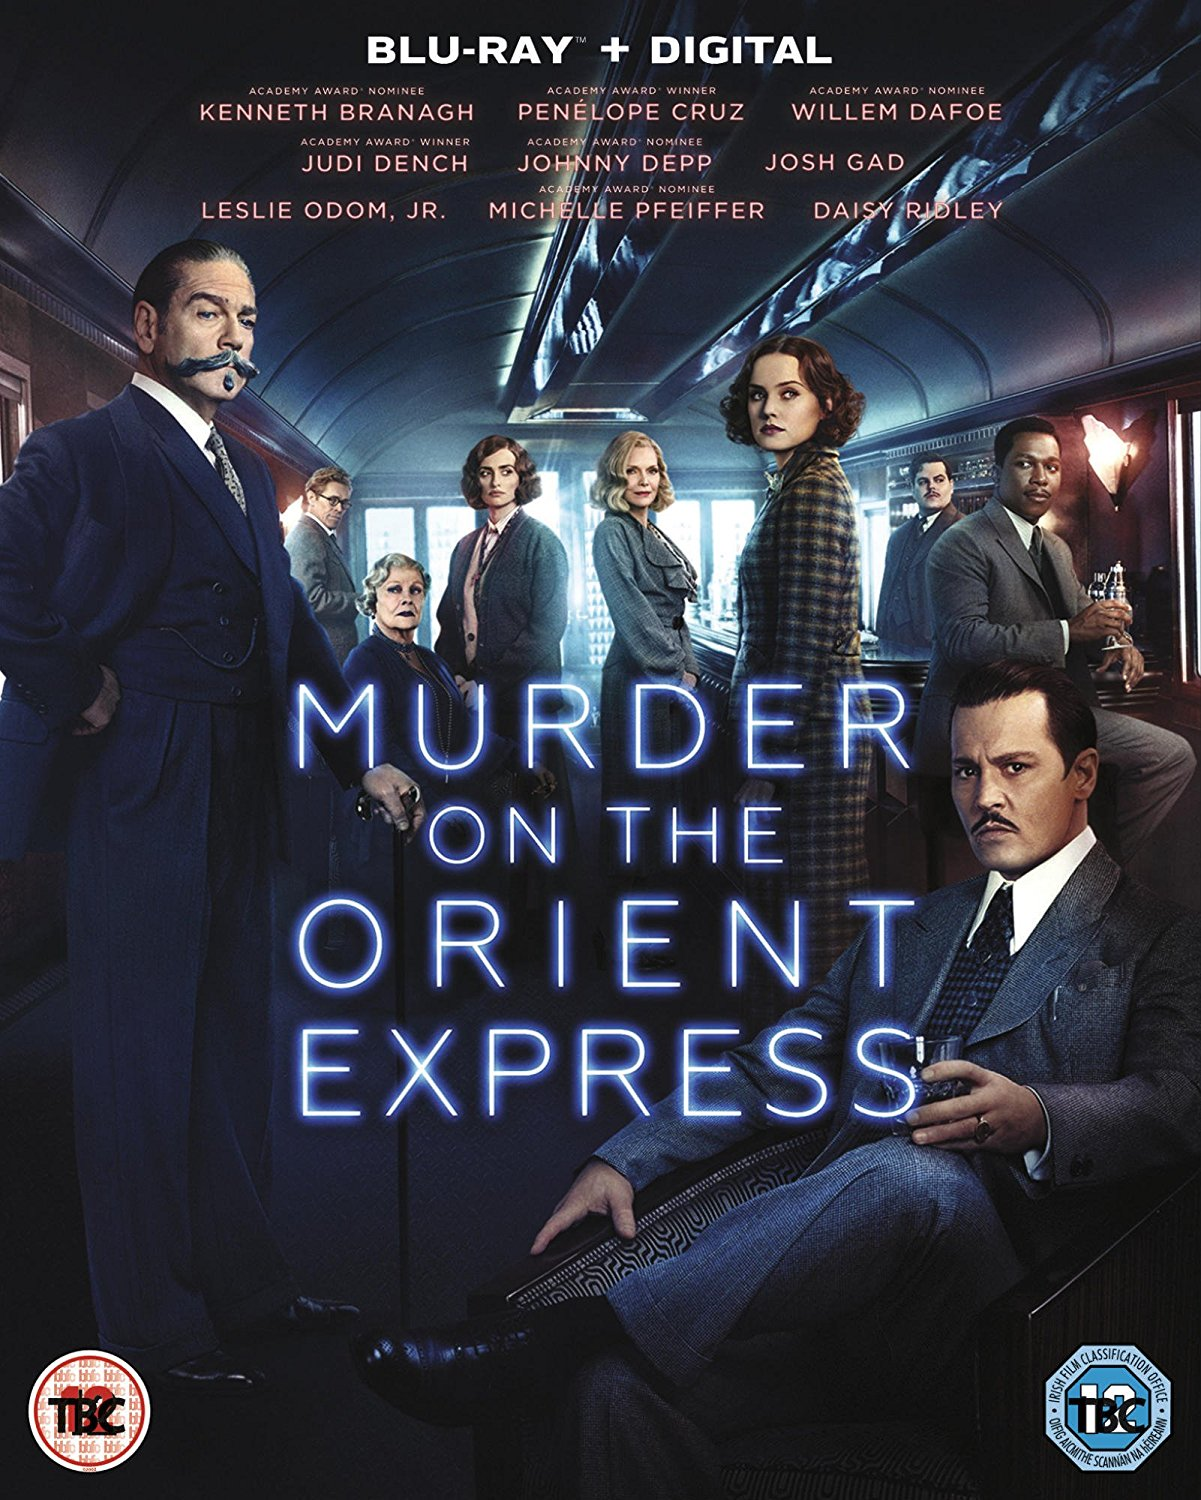 Murder On The Orient Express (2017) - Blu-ray